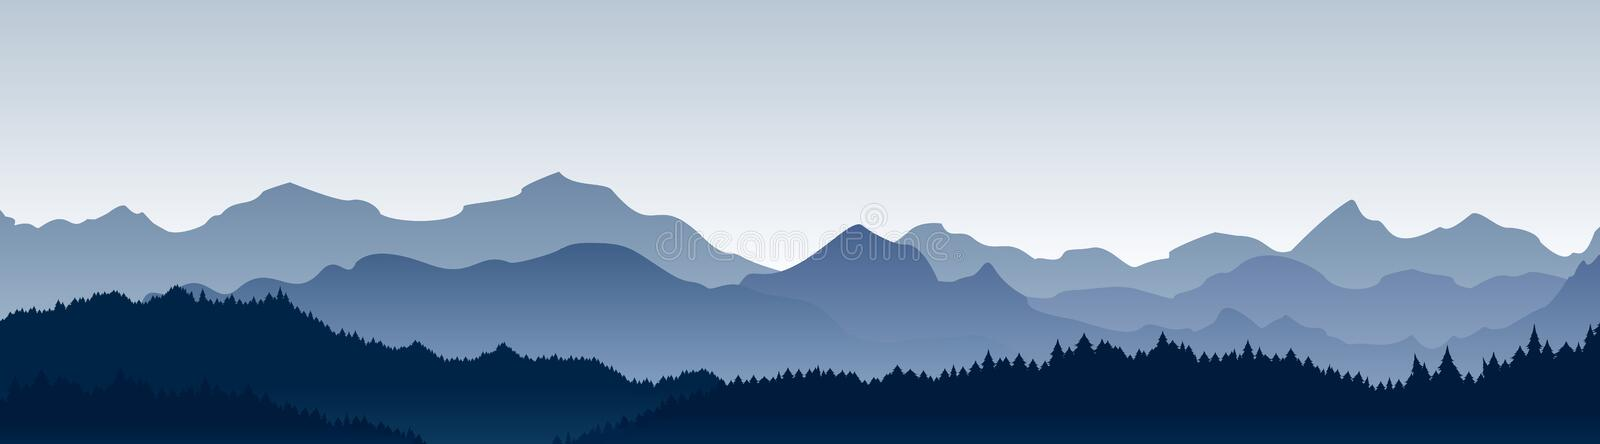 Vector illustration of beautiful panoramic view. Mountains in fog with forest, morning mountain background, landscape. stock illustration